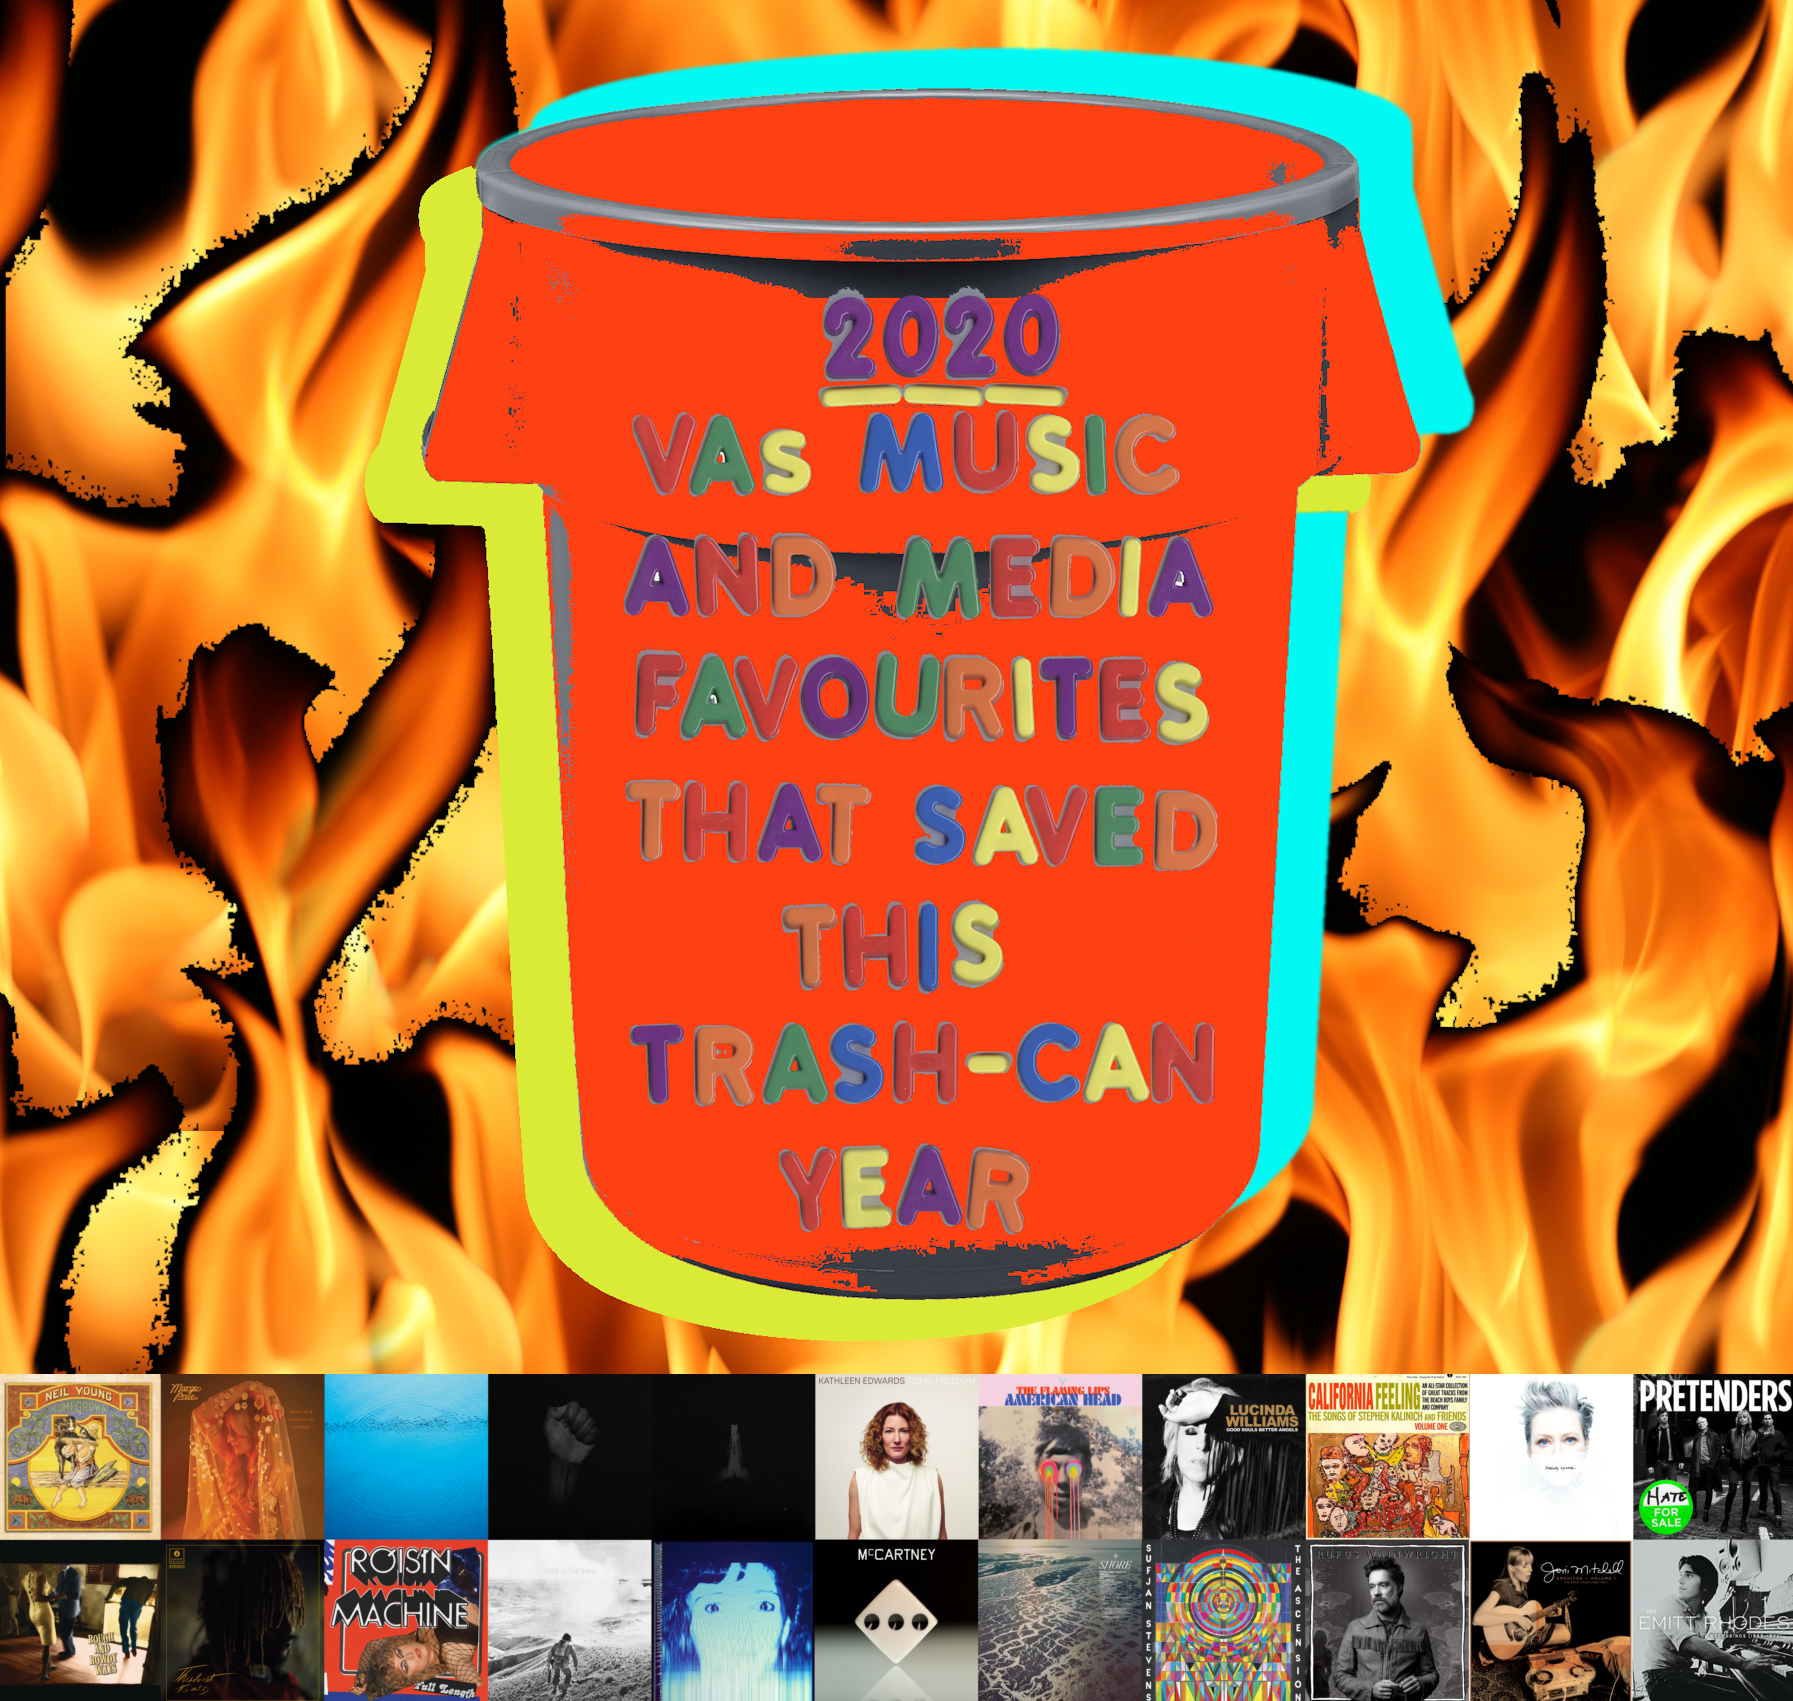 2020: VA's MUSIC AND MEDIA FAVOURITES THAT SAVED THIS TRASH-CAN YEAR